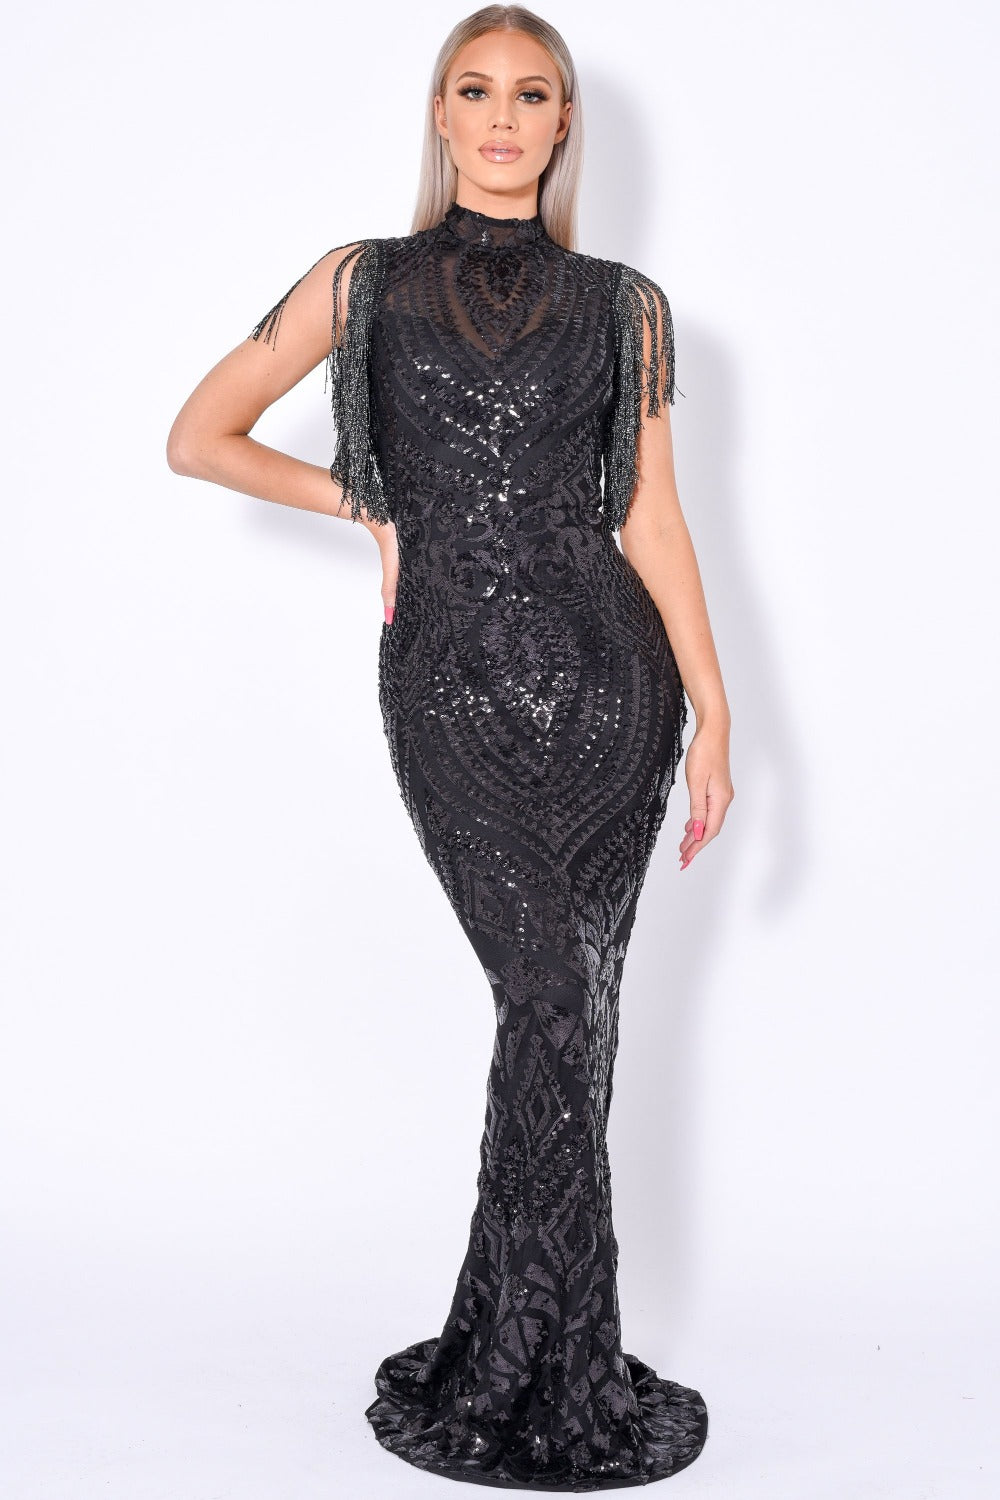 Magic Vip Black Luxe Tassel Fringe Sequin Embellished Illusion Maxi Dress